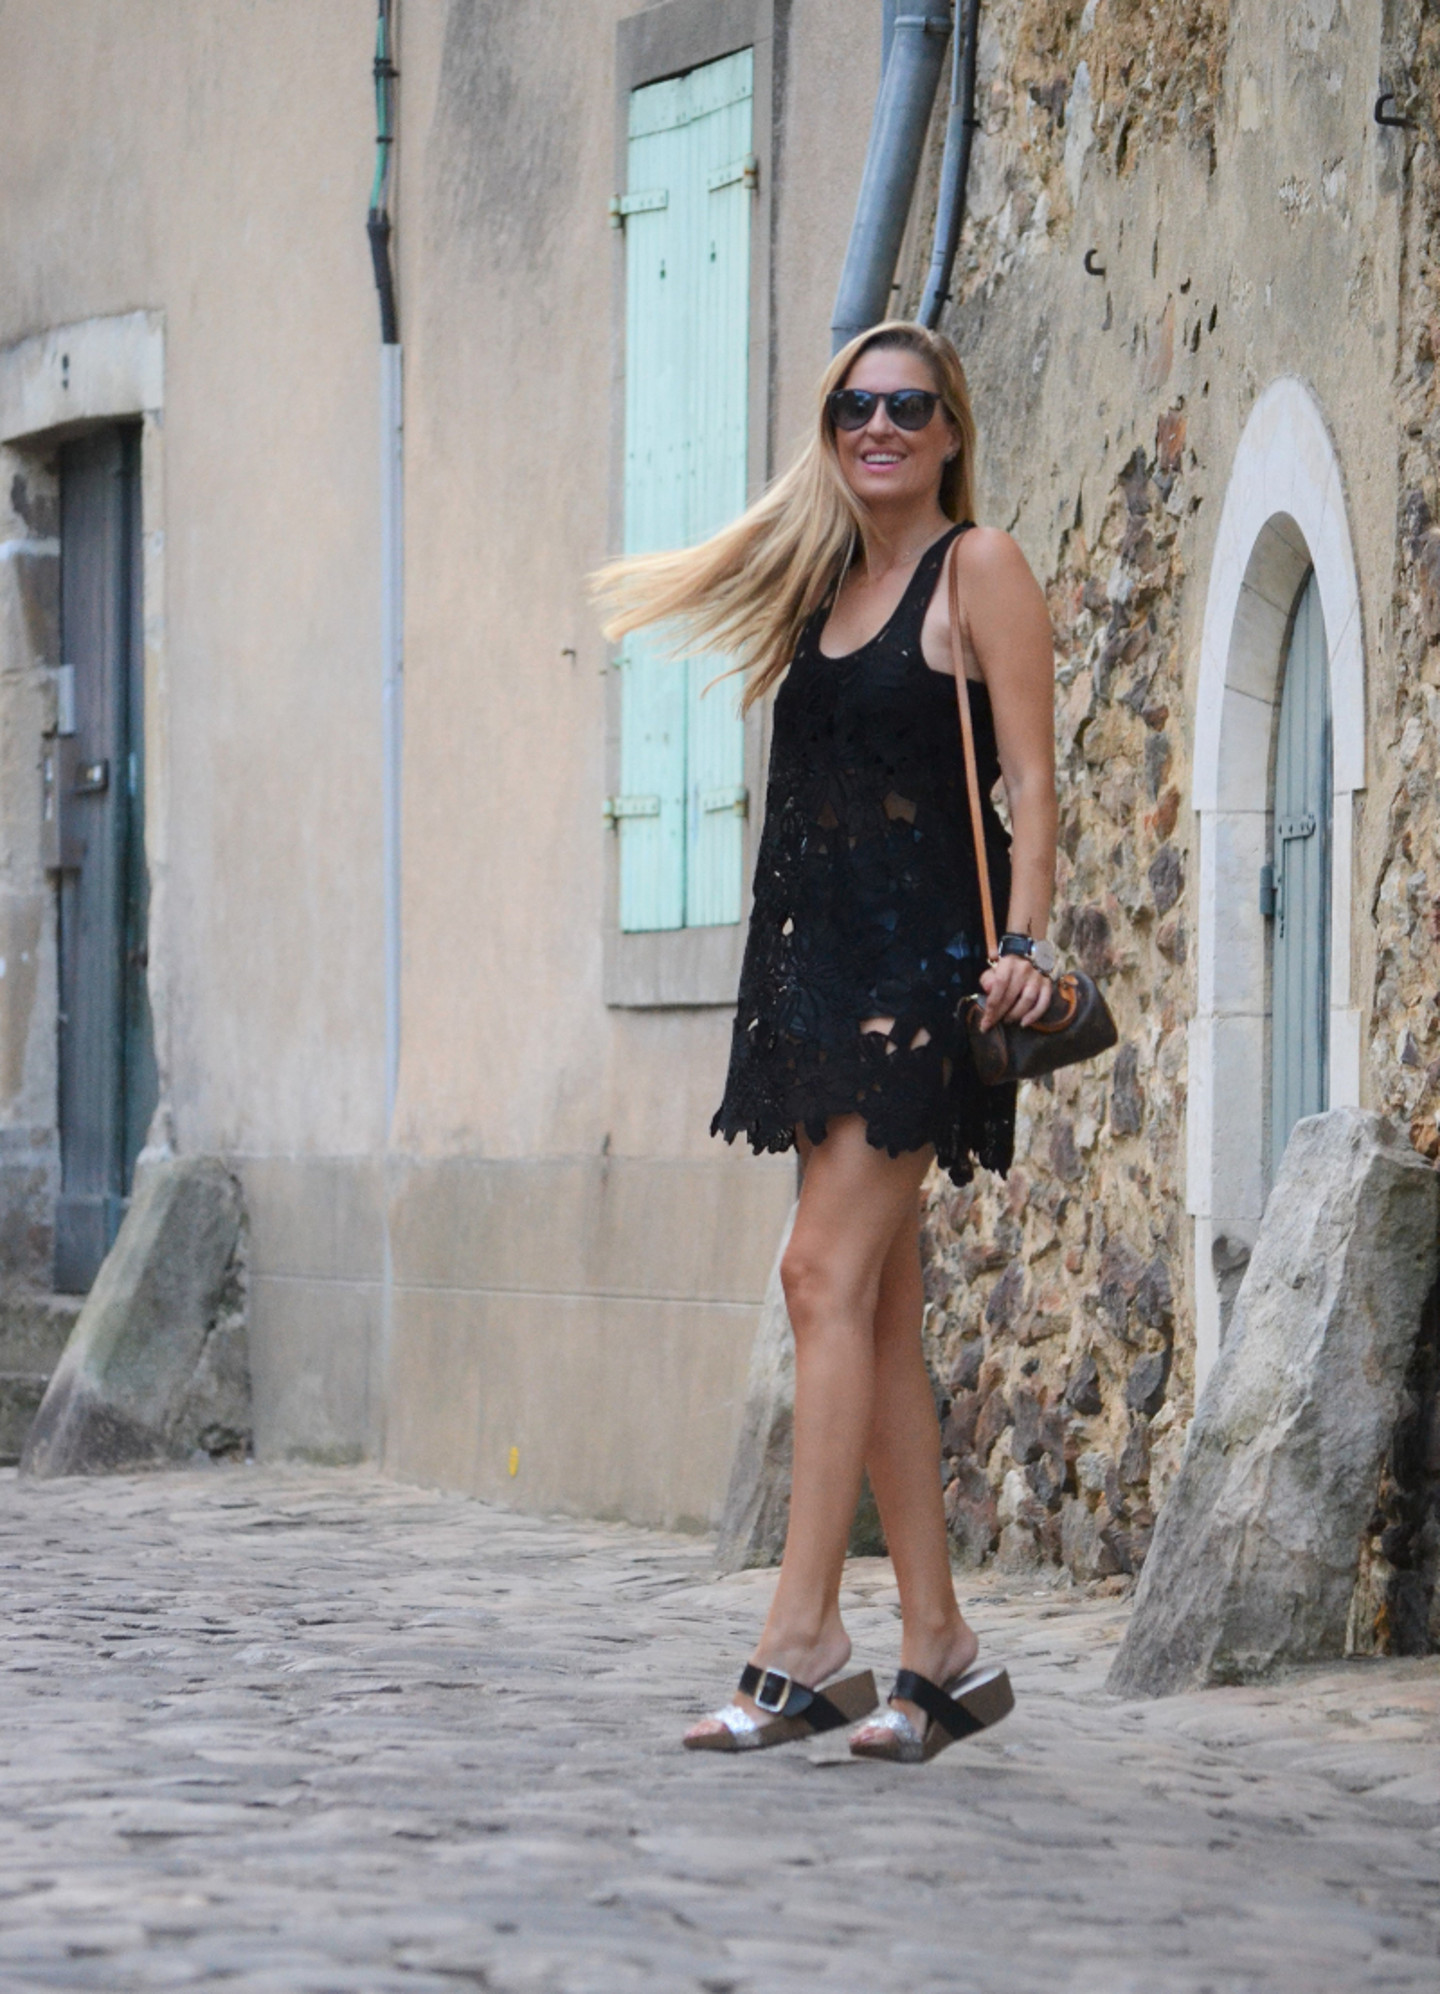 Le_Mans_Black_Dress_Sandals_Louis_Vuitton_Mini_Speedy_Lara_Martin_Gilarranz_Bymyheels (12)